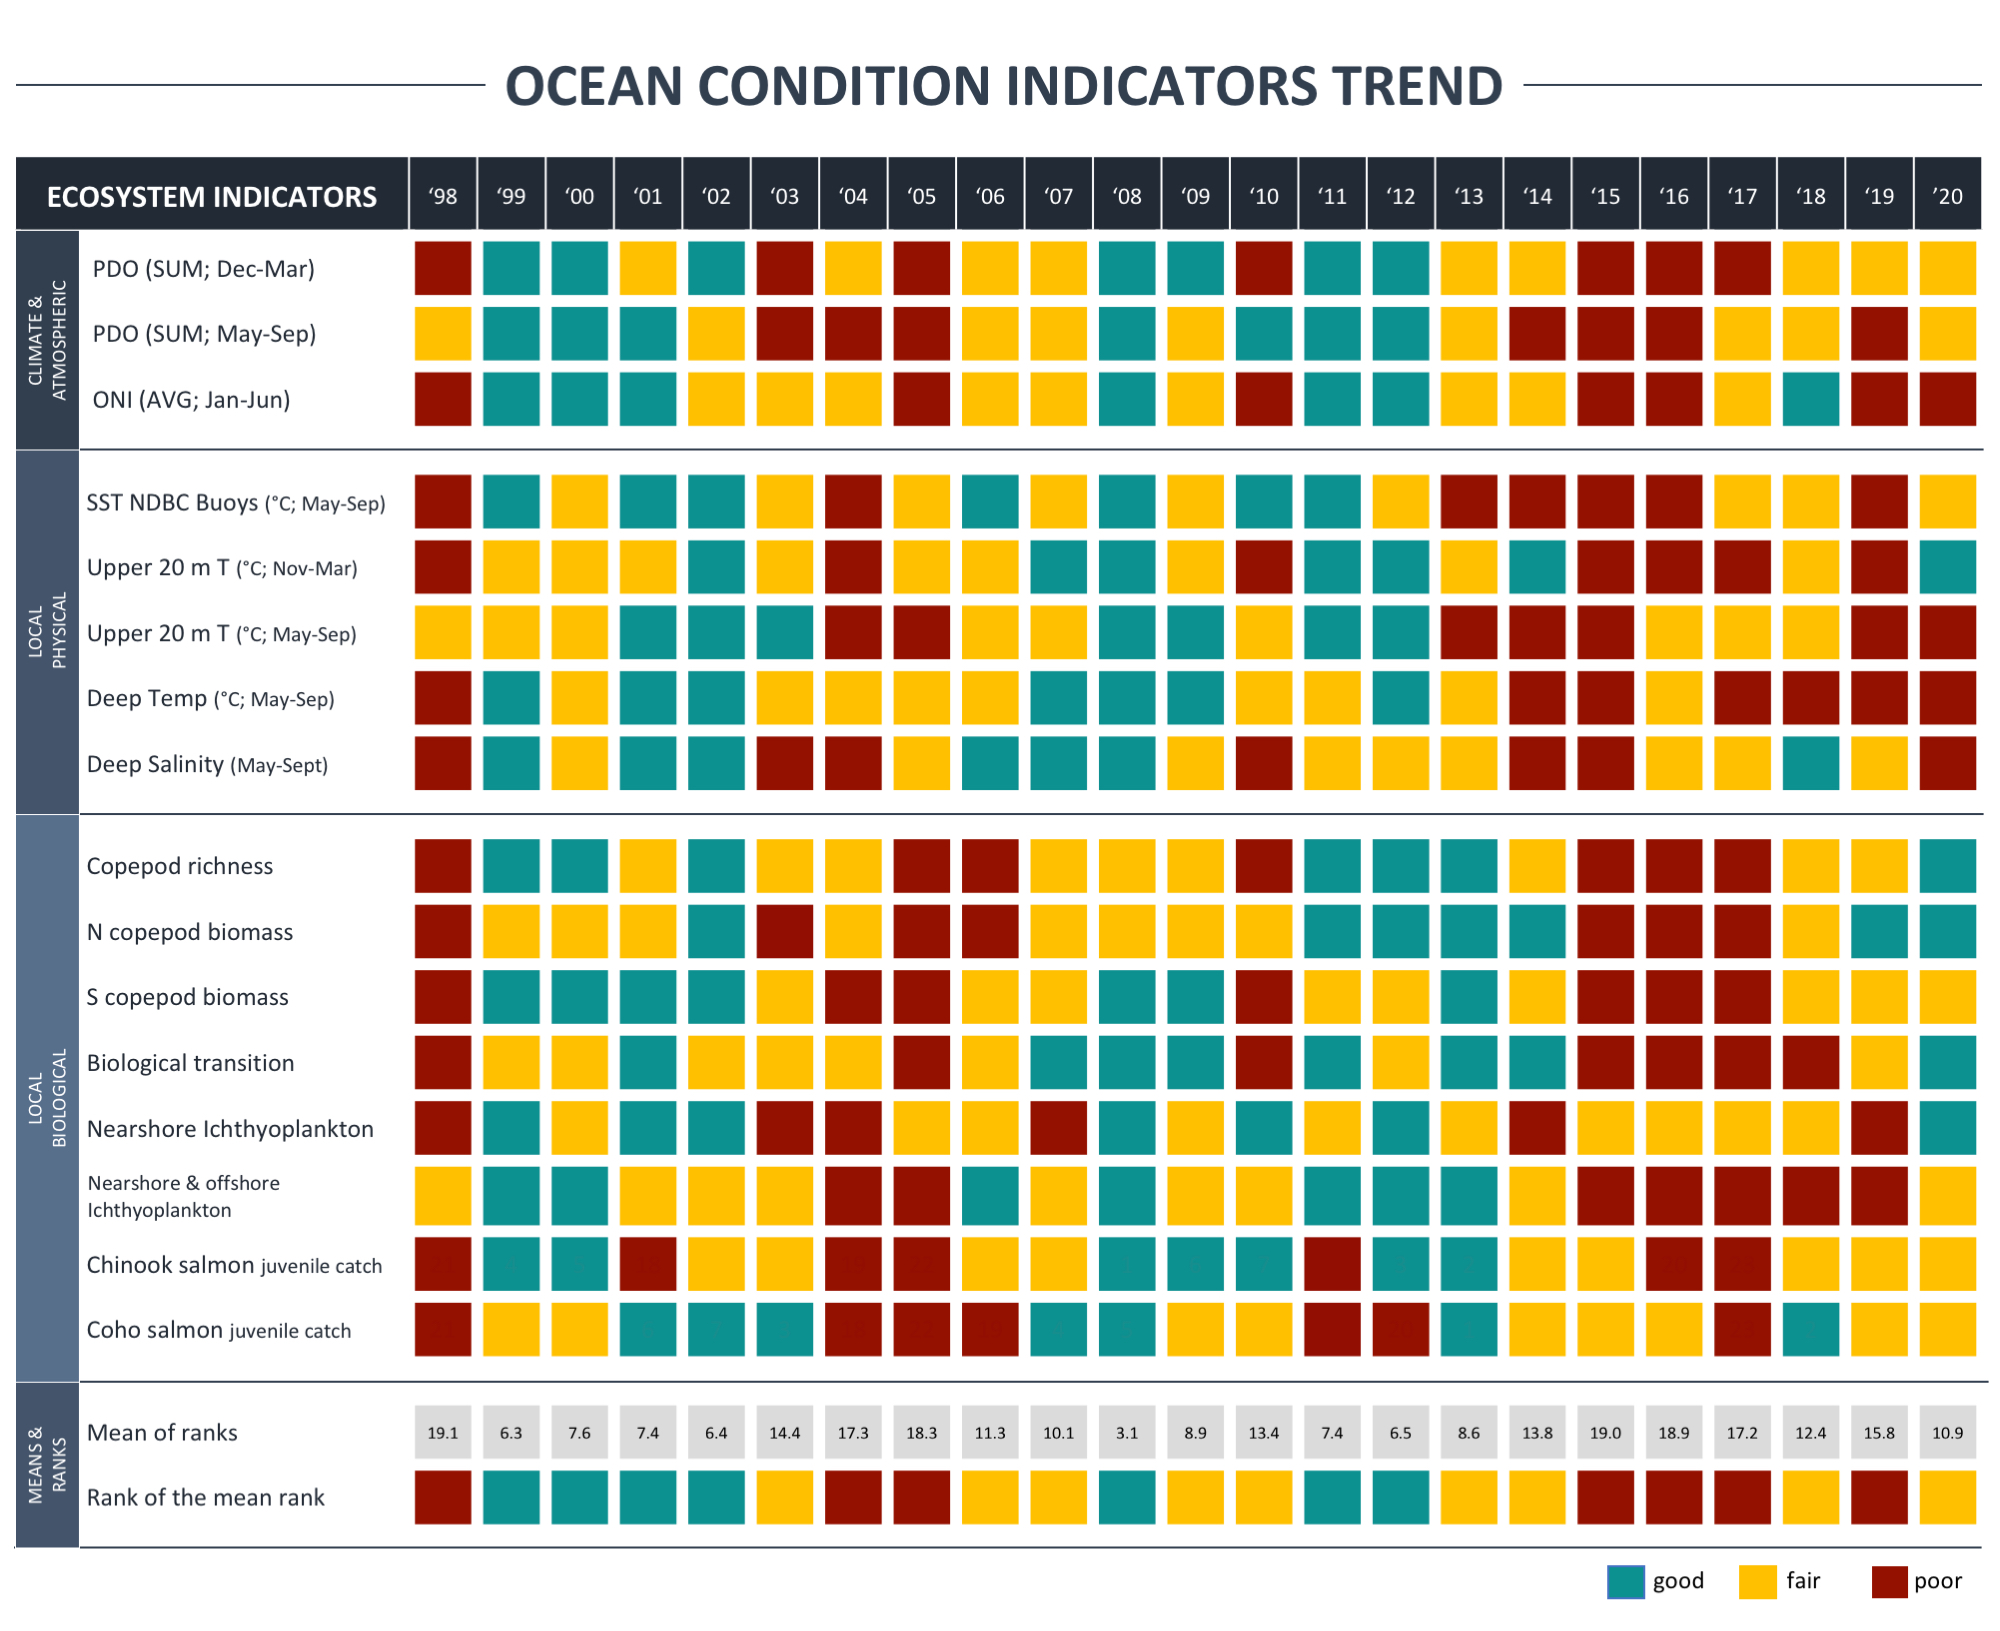 ocean conditions trend from 1998 to 2020 across climate and atmospheric, local physical and local biological indicators.